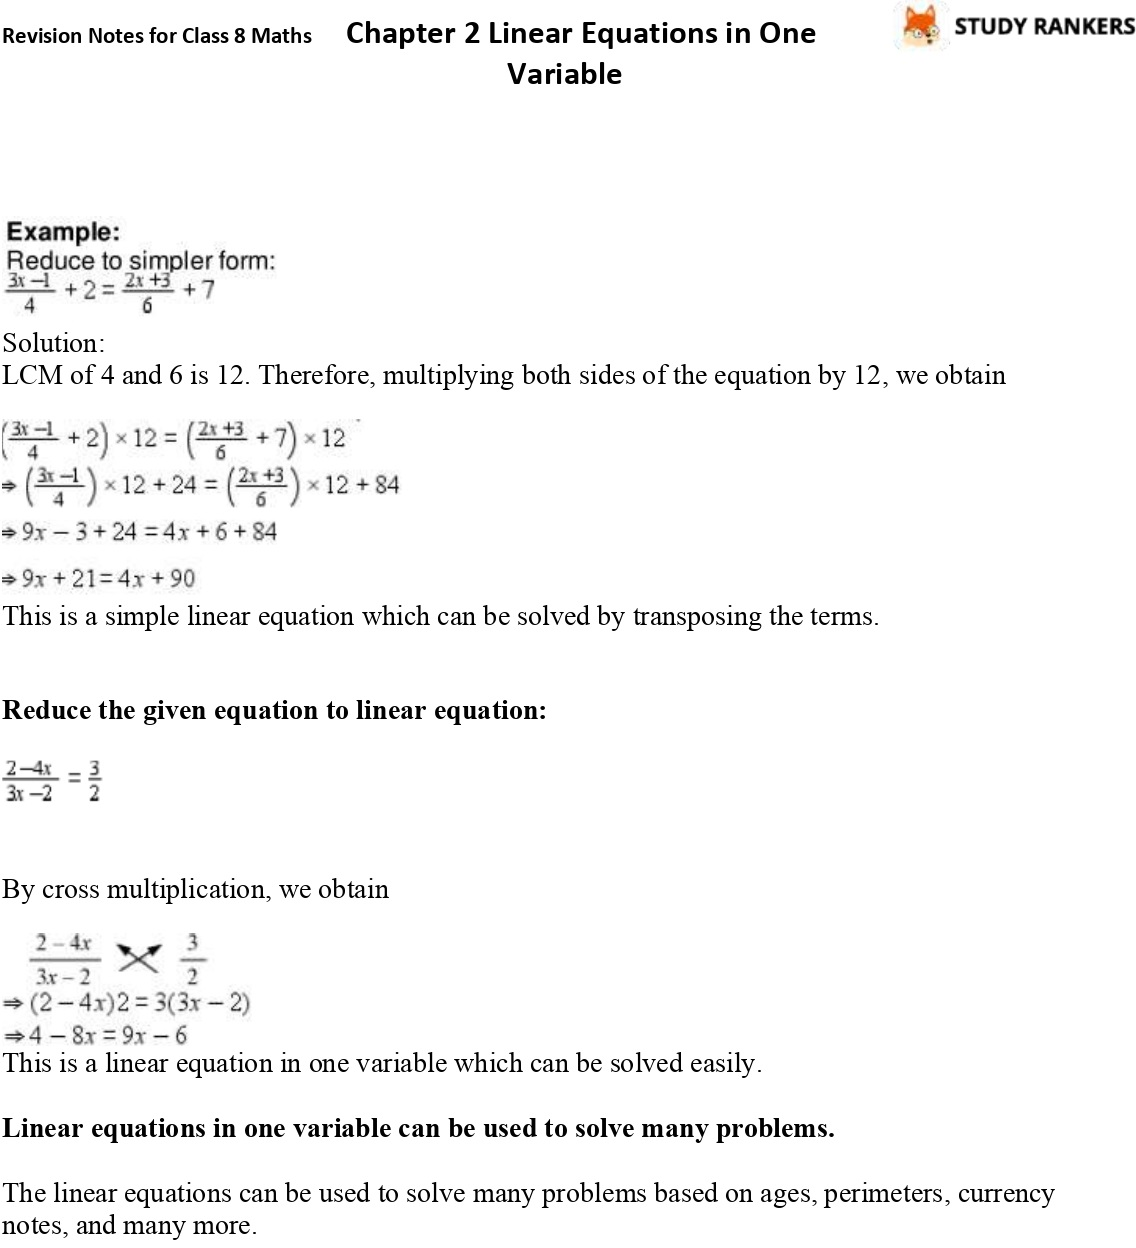 Cbse Revision Notes For Class 8 Chapter 2 Linear Equations